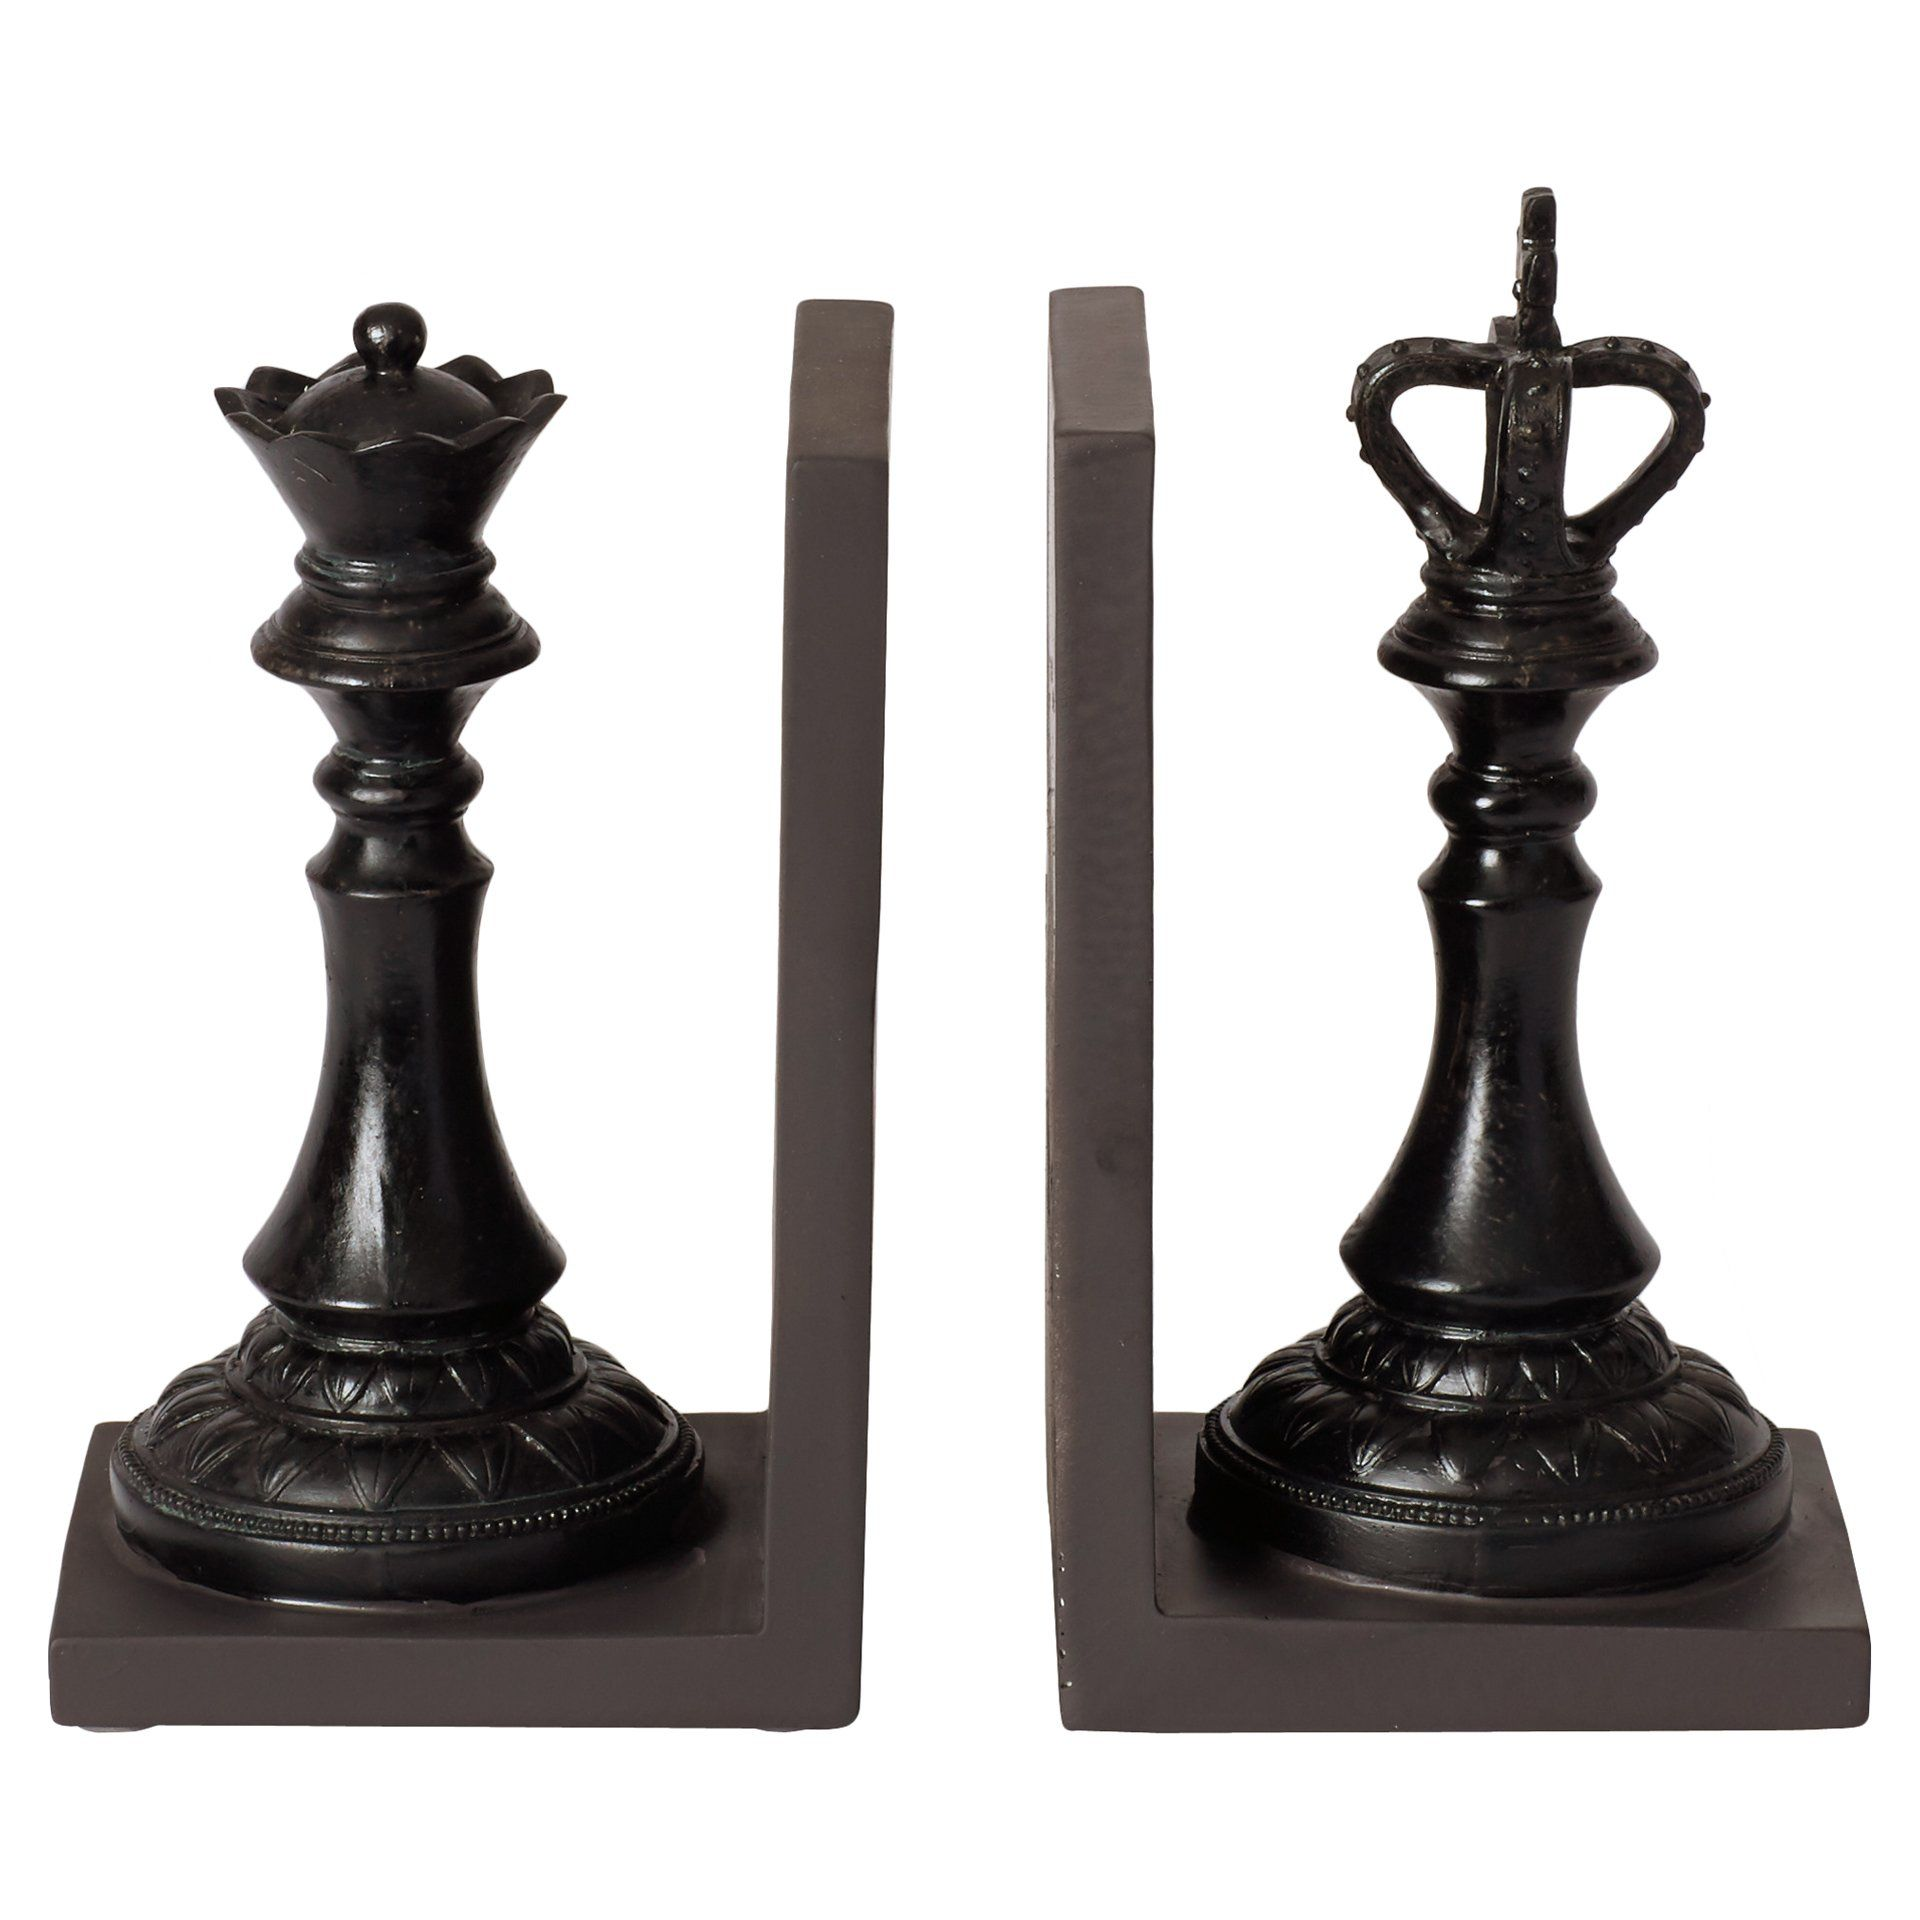 15 Clever Ideas To Decorate Your Small Living Room: Bookends, Queen Chess Piece